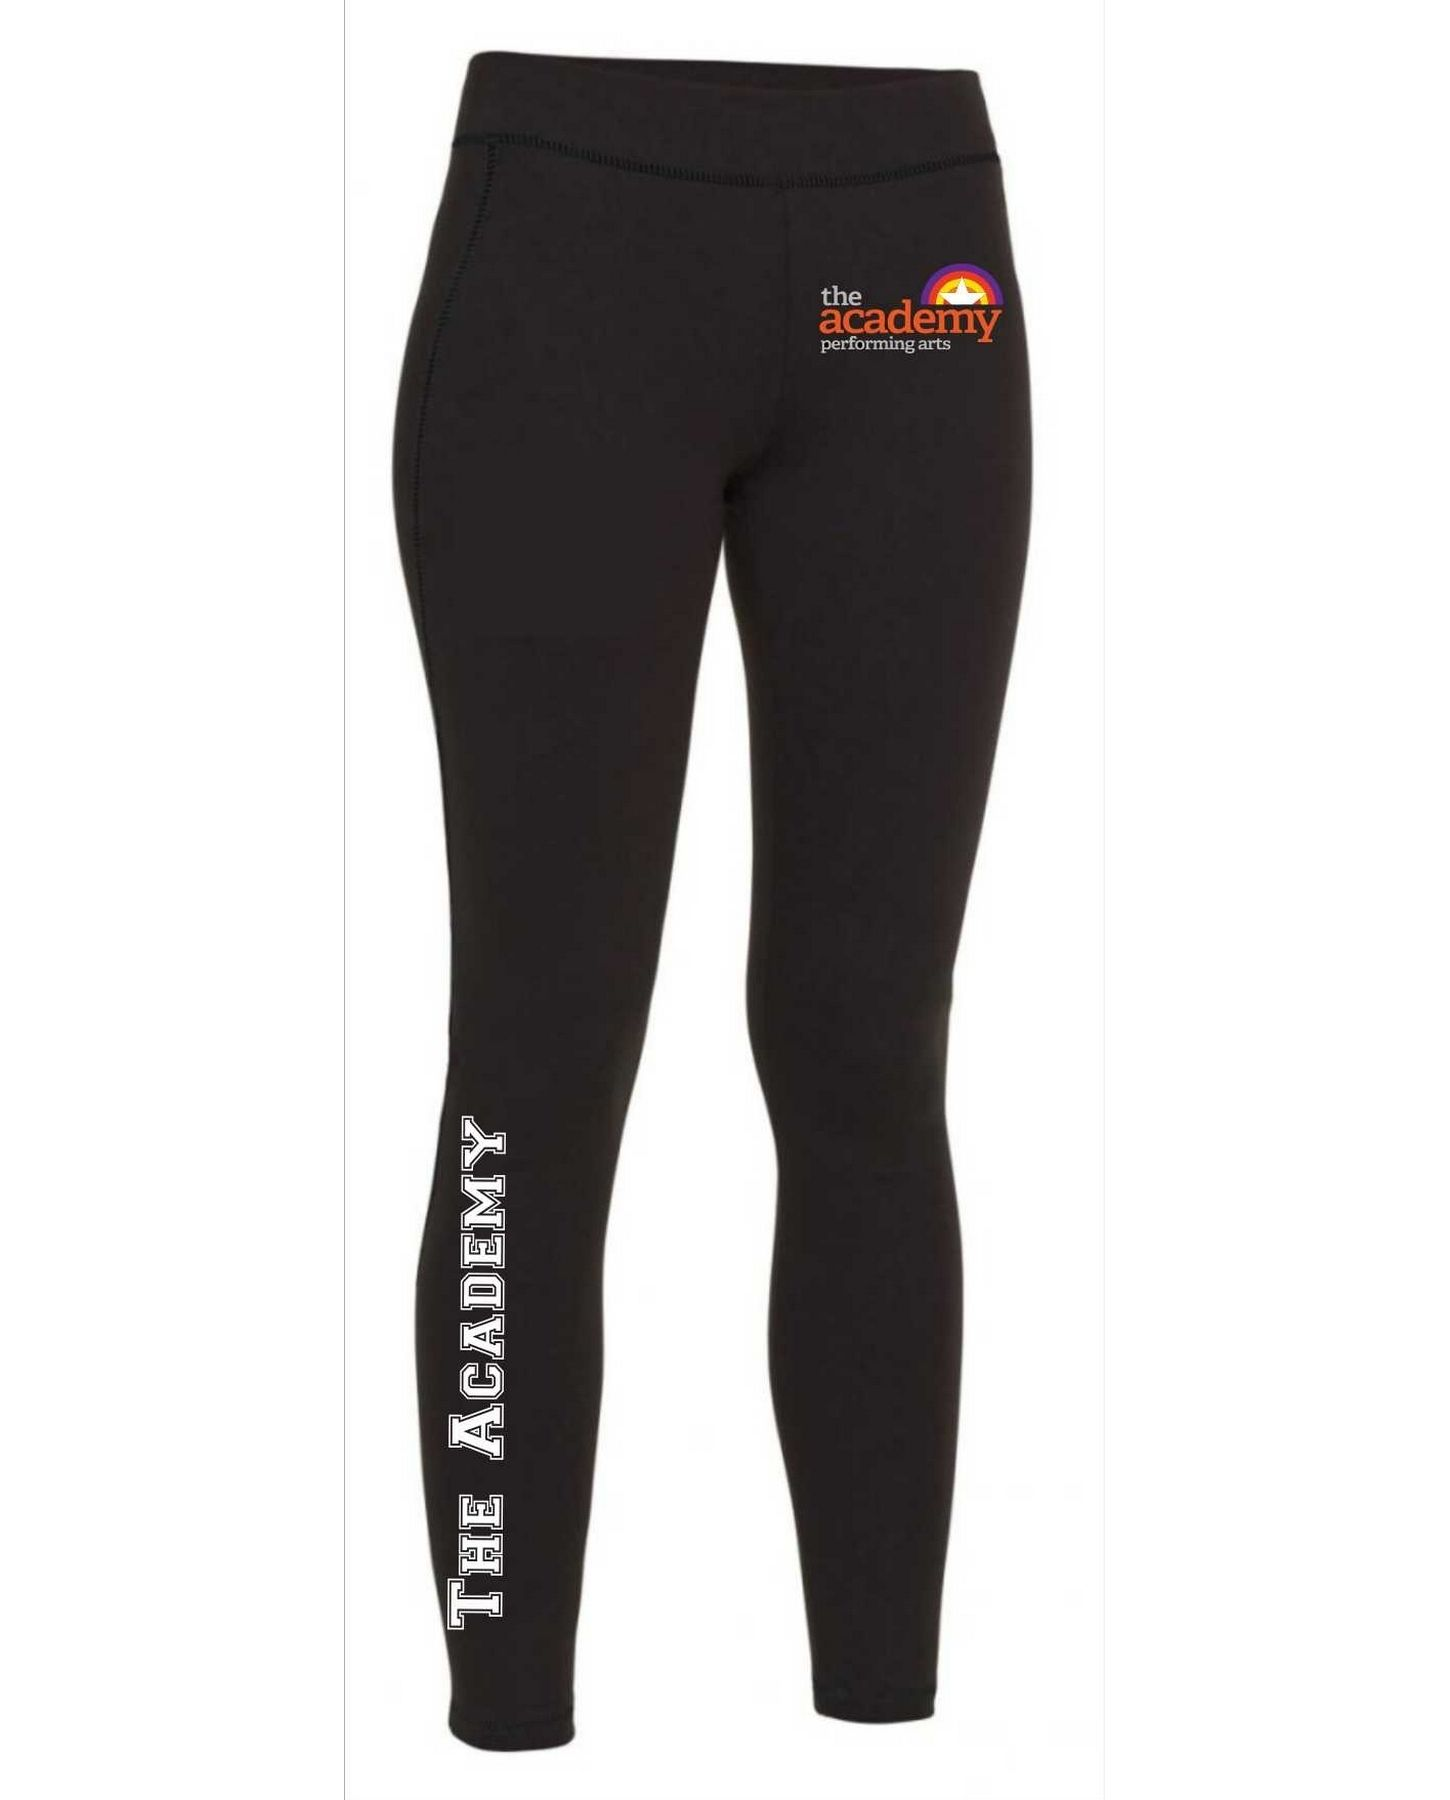 The Academy – Adults Leggings